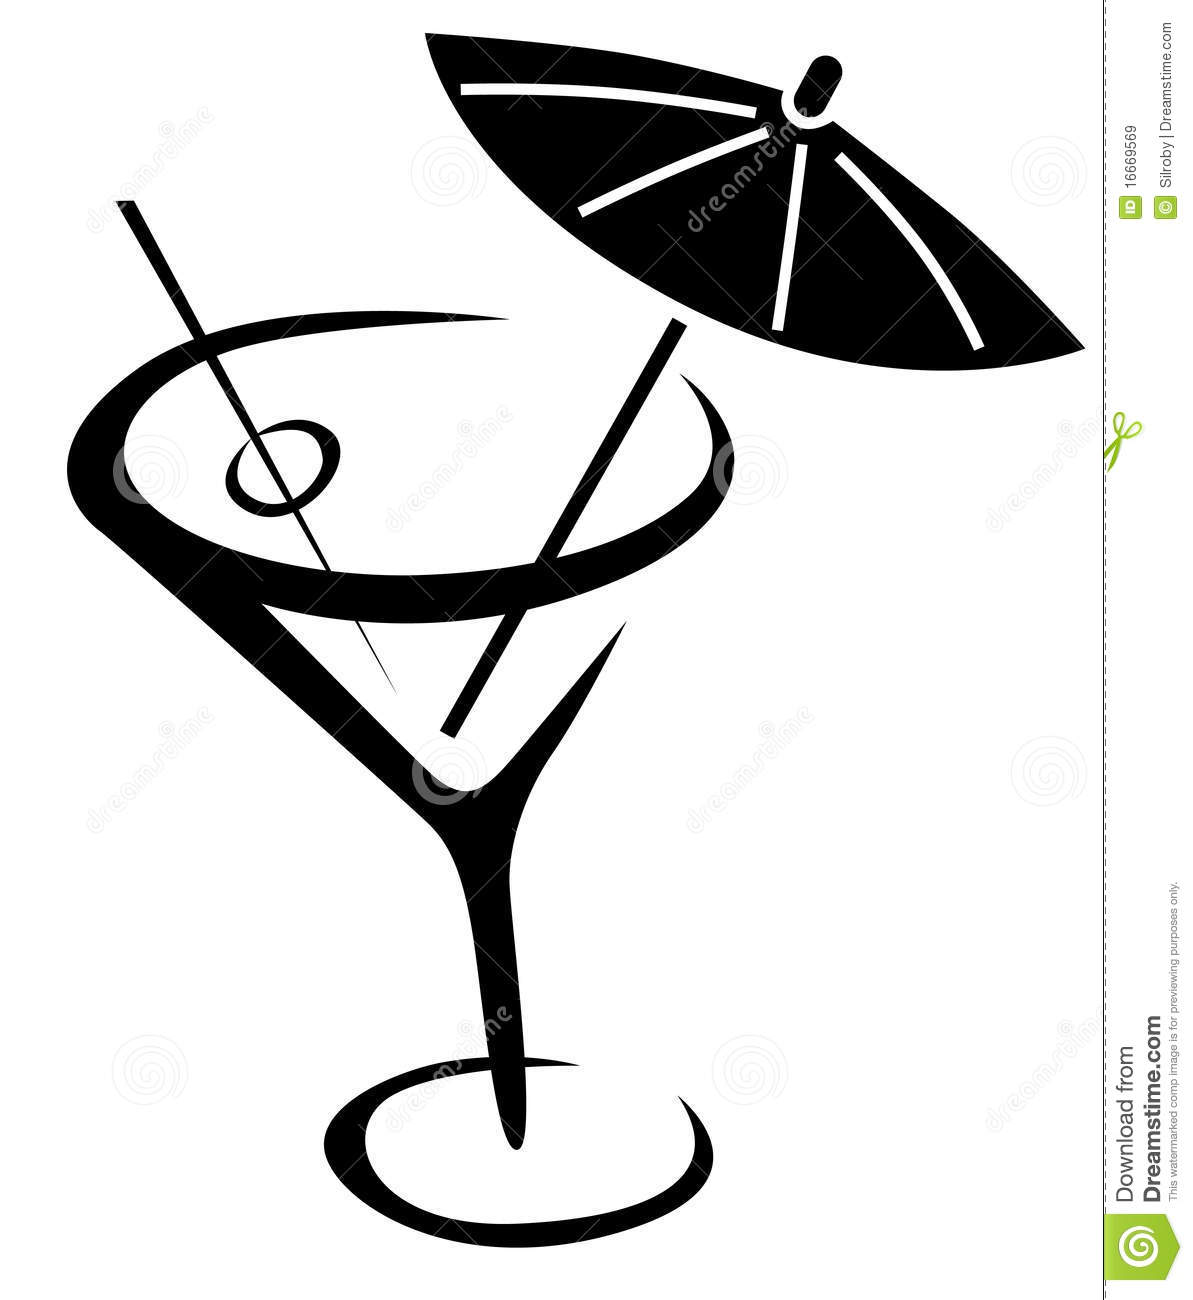 Cocktail glass clipart - Clipground